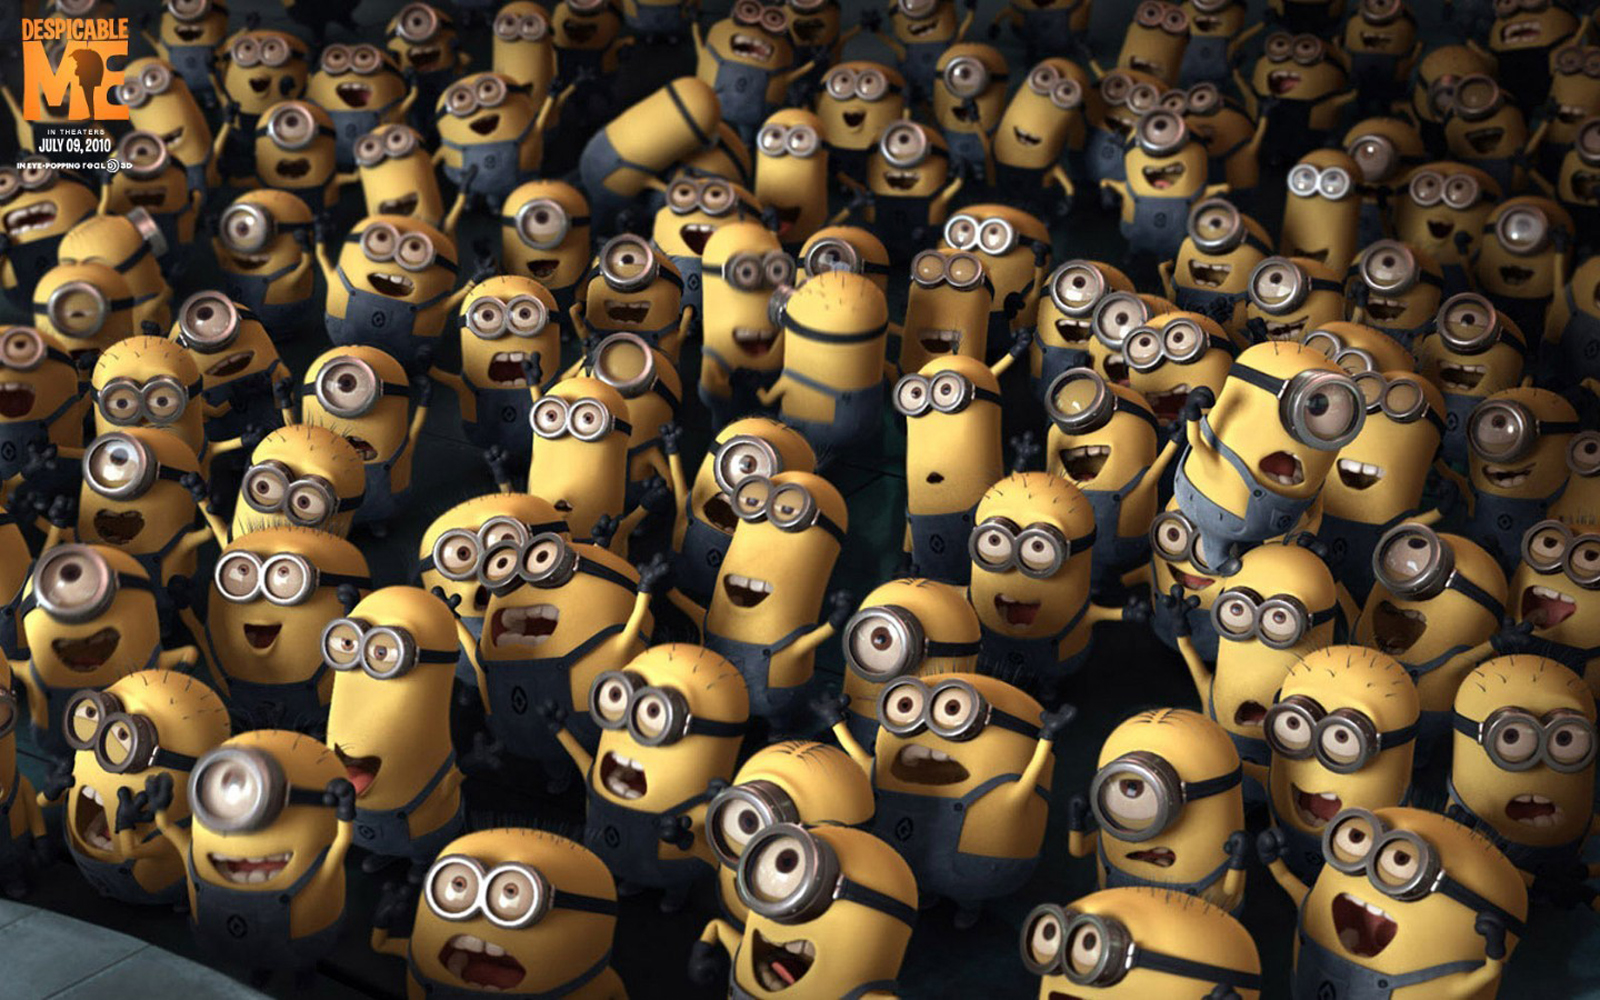 Wallpapers Free Download Hd 3d Despicable Me Hd Wallpapers Cartoon Wallpapers